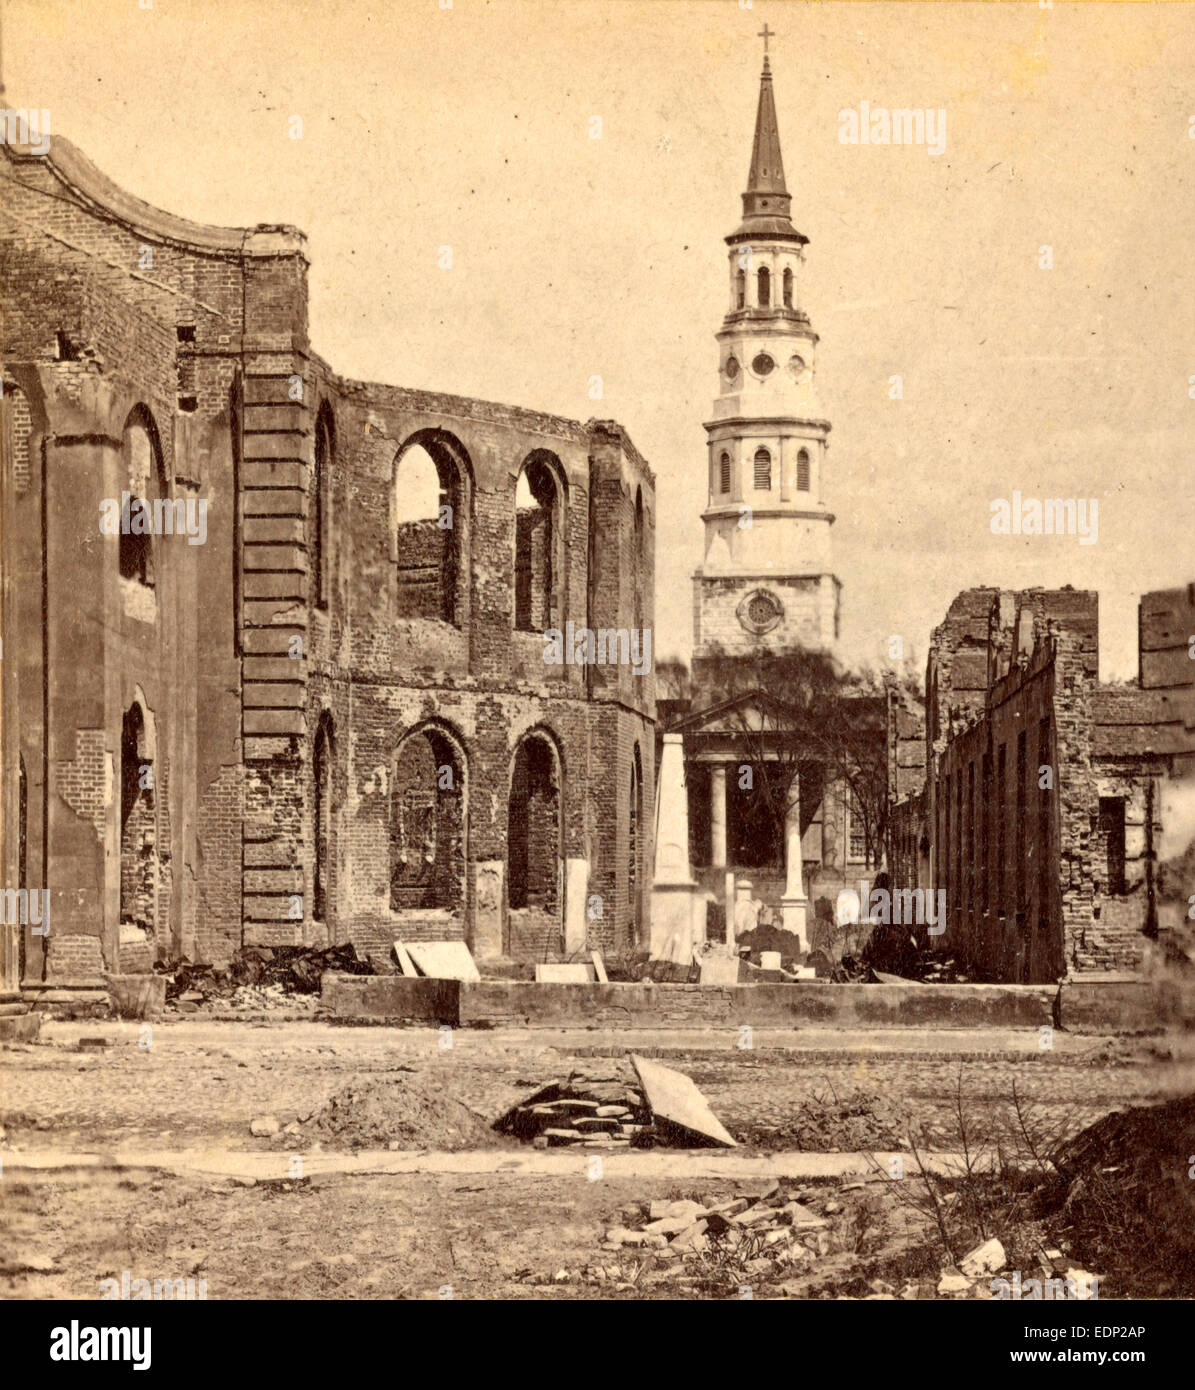 Meeting Street-Ruins of Secession Hall and Circular Church, with St. Phillips in distance, USA, US, Vintage photography - Stock Image